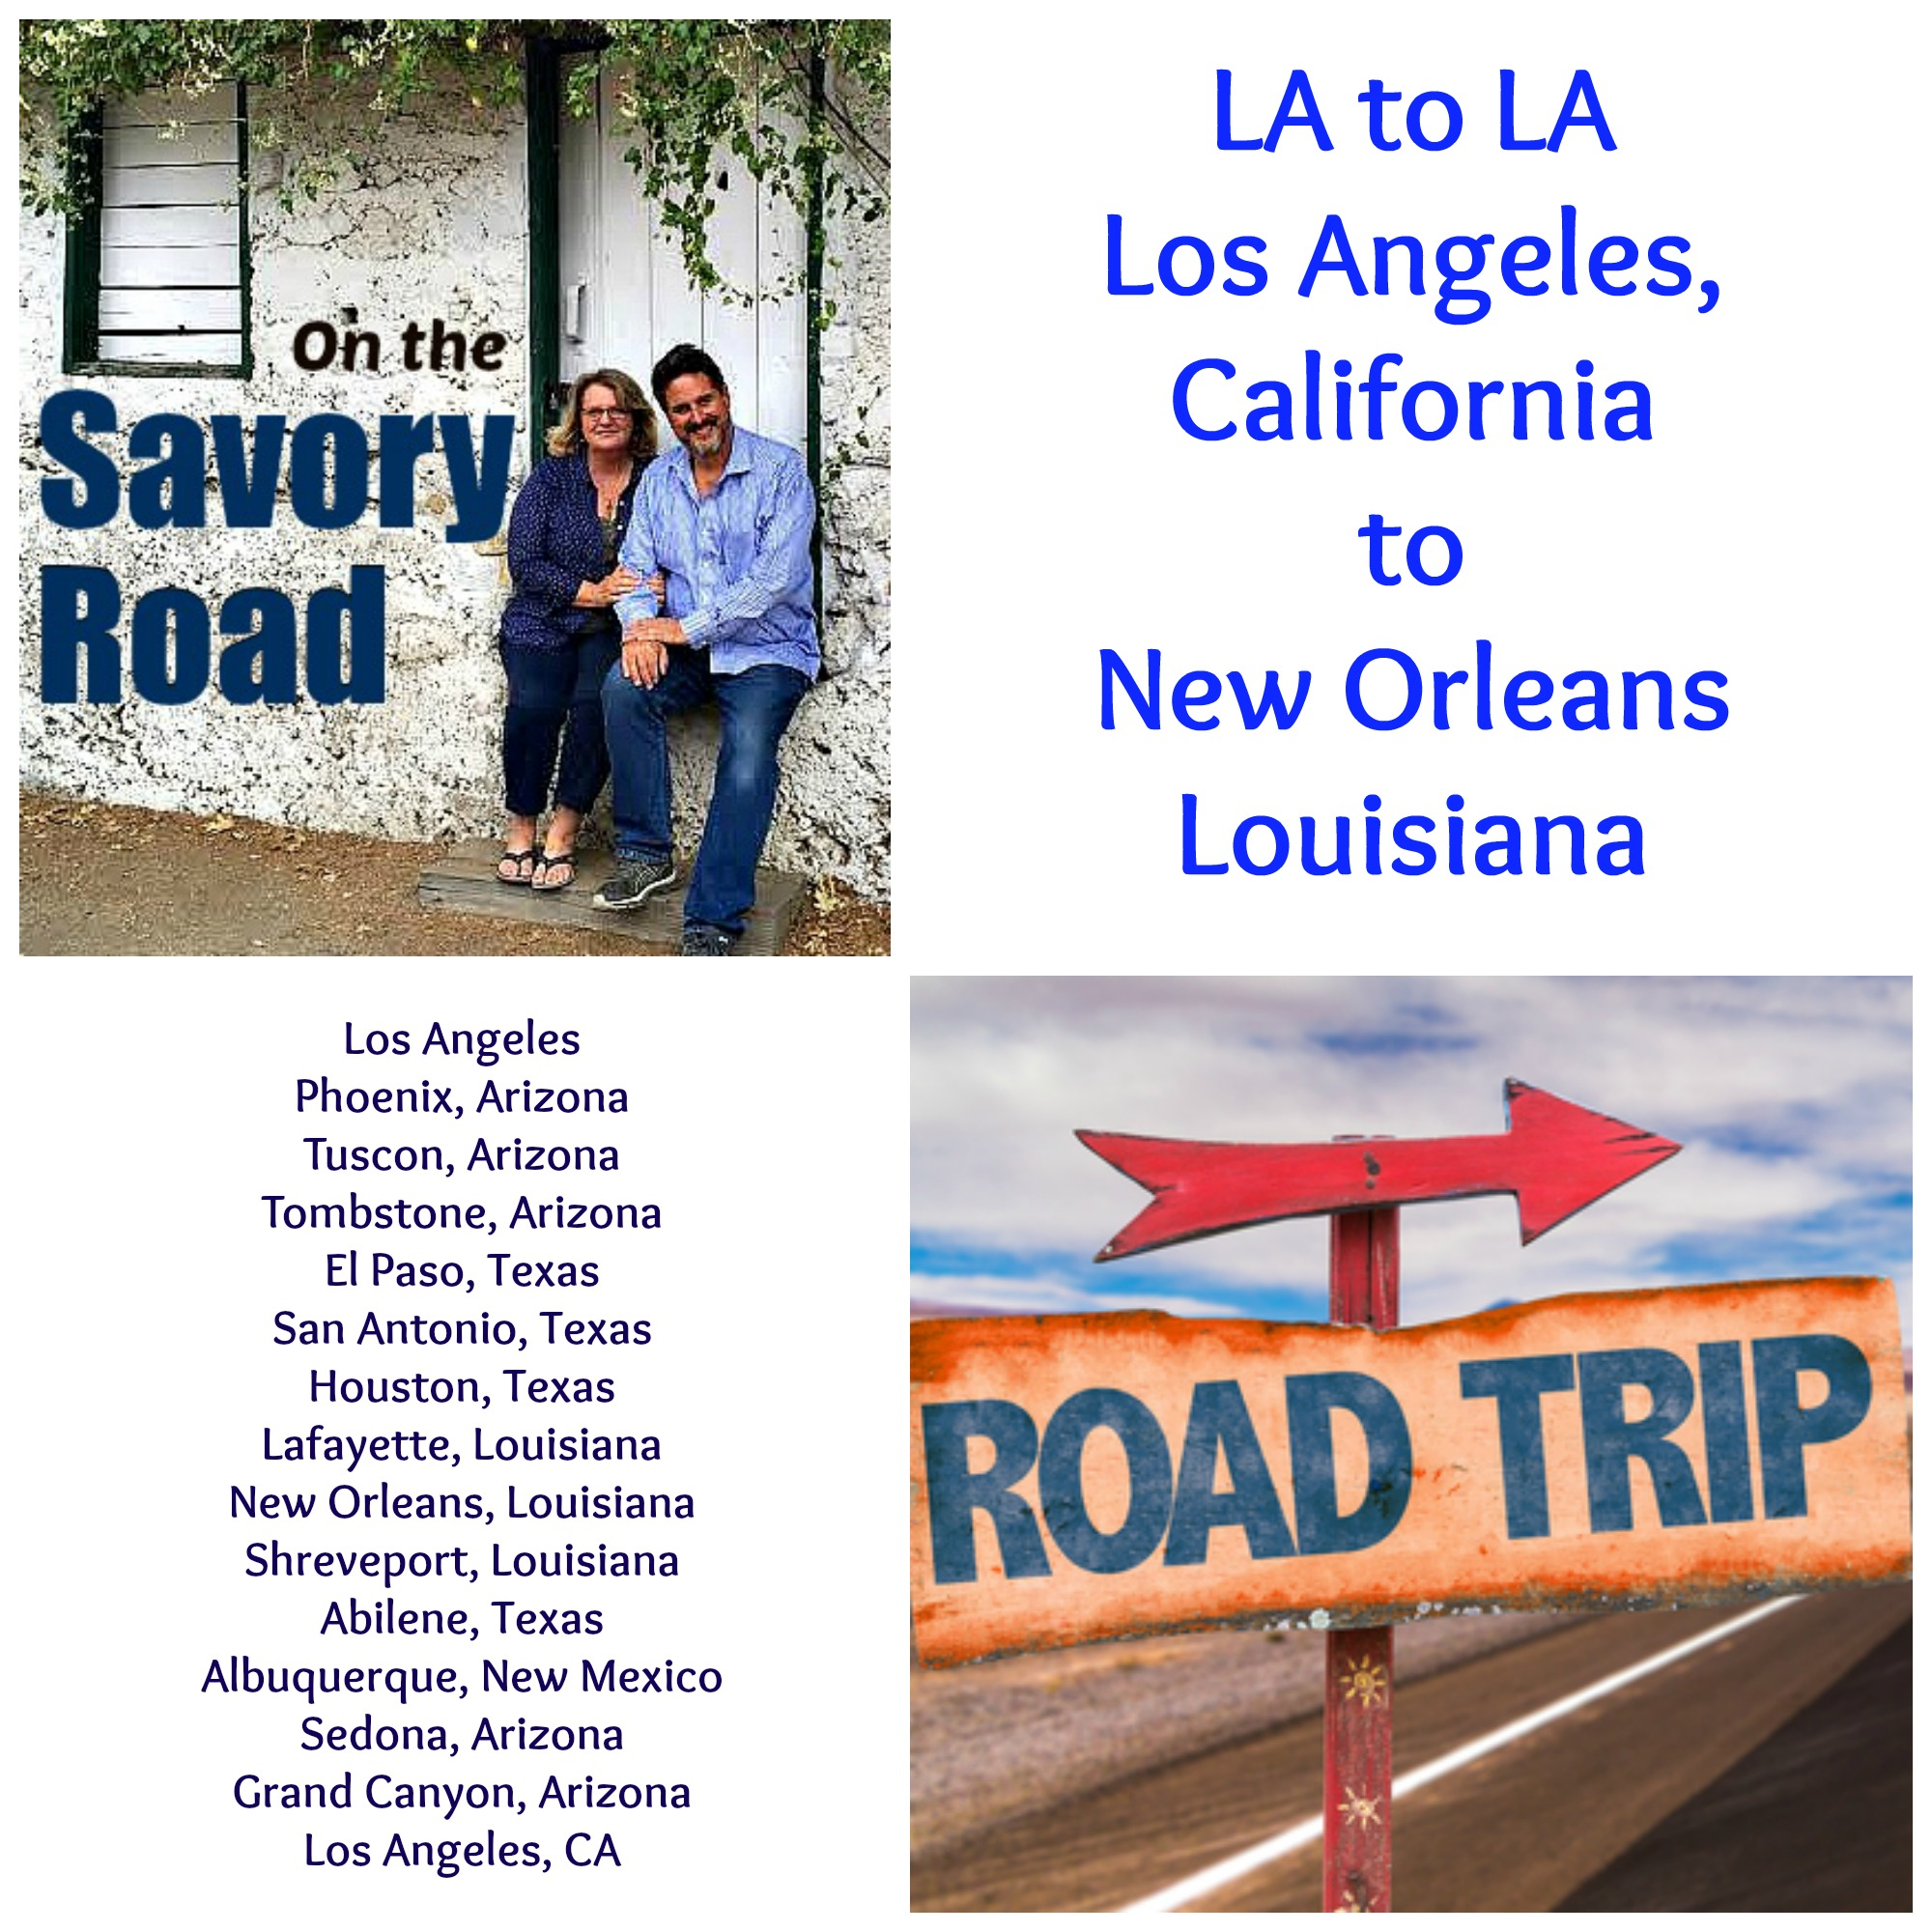 LA to LA Road Trip, starting 12/18/15, Los Angeles to New Orleans.